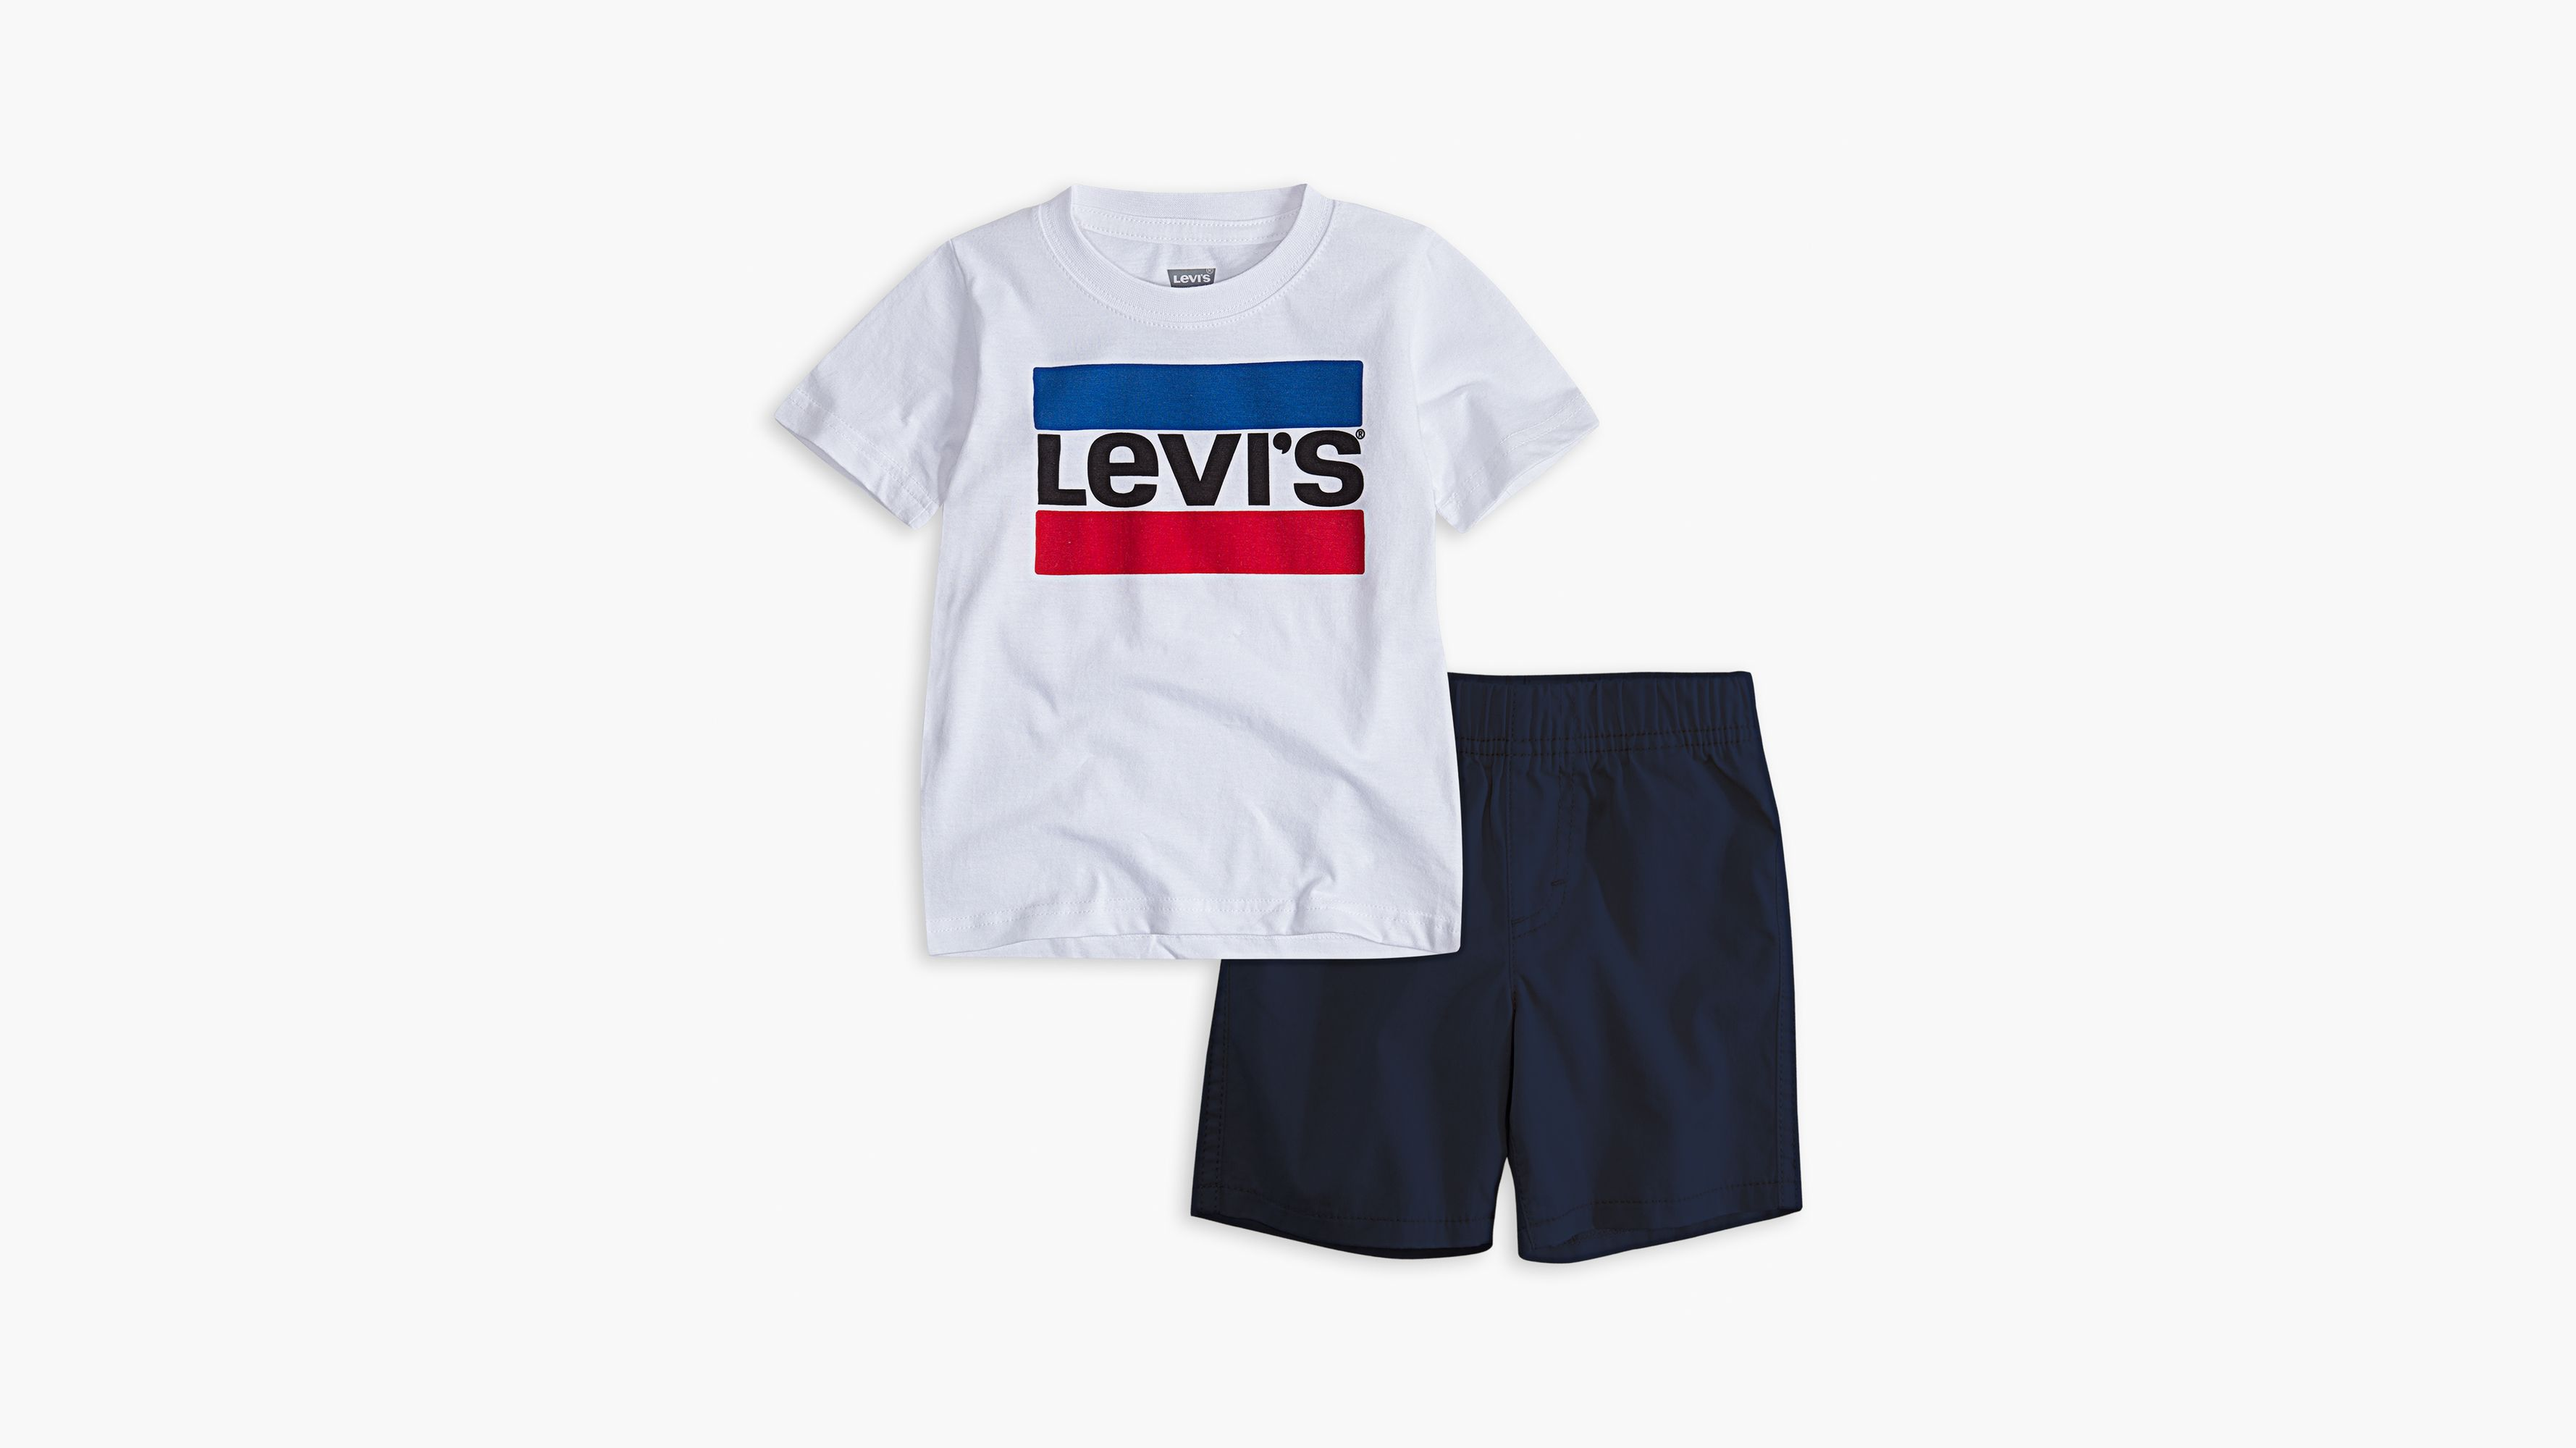 Boys' Clothing (newborn-5t) Lot Of 2 Toddler Boy Cargo Shorts Size 24 Mo Modern Techniques Clothing, Shoes & Accessories